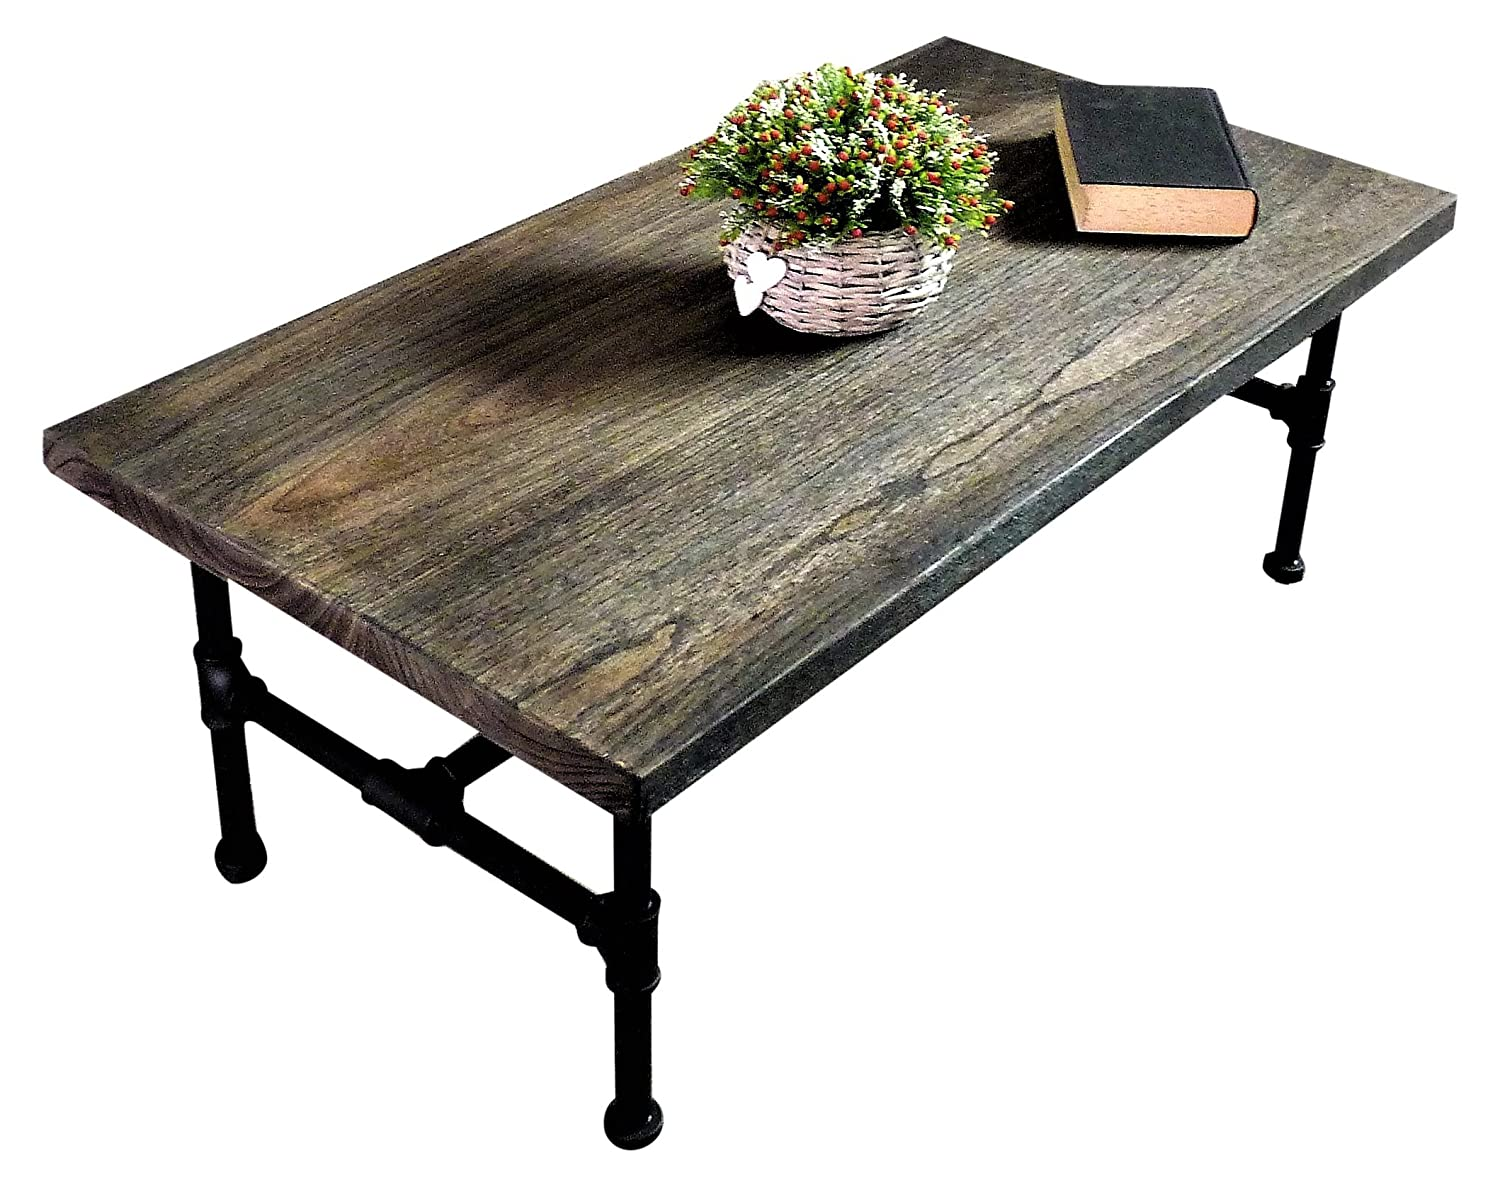 Amazon.com: Furniture Pipeline Industrial, Rectangle Pipe Coffee Cocktail  Table, Metal With Reclaimed Aged Wood Finish: Kitchen U0026 Dining